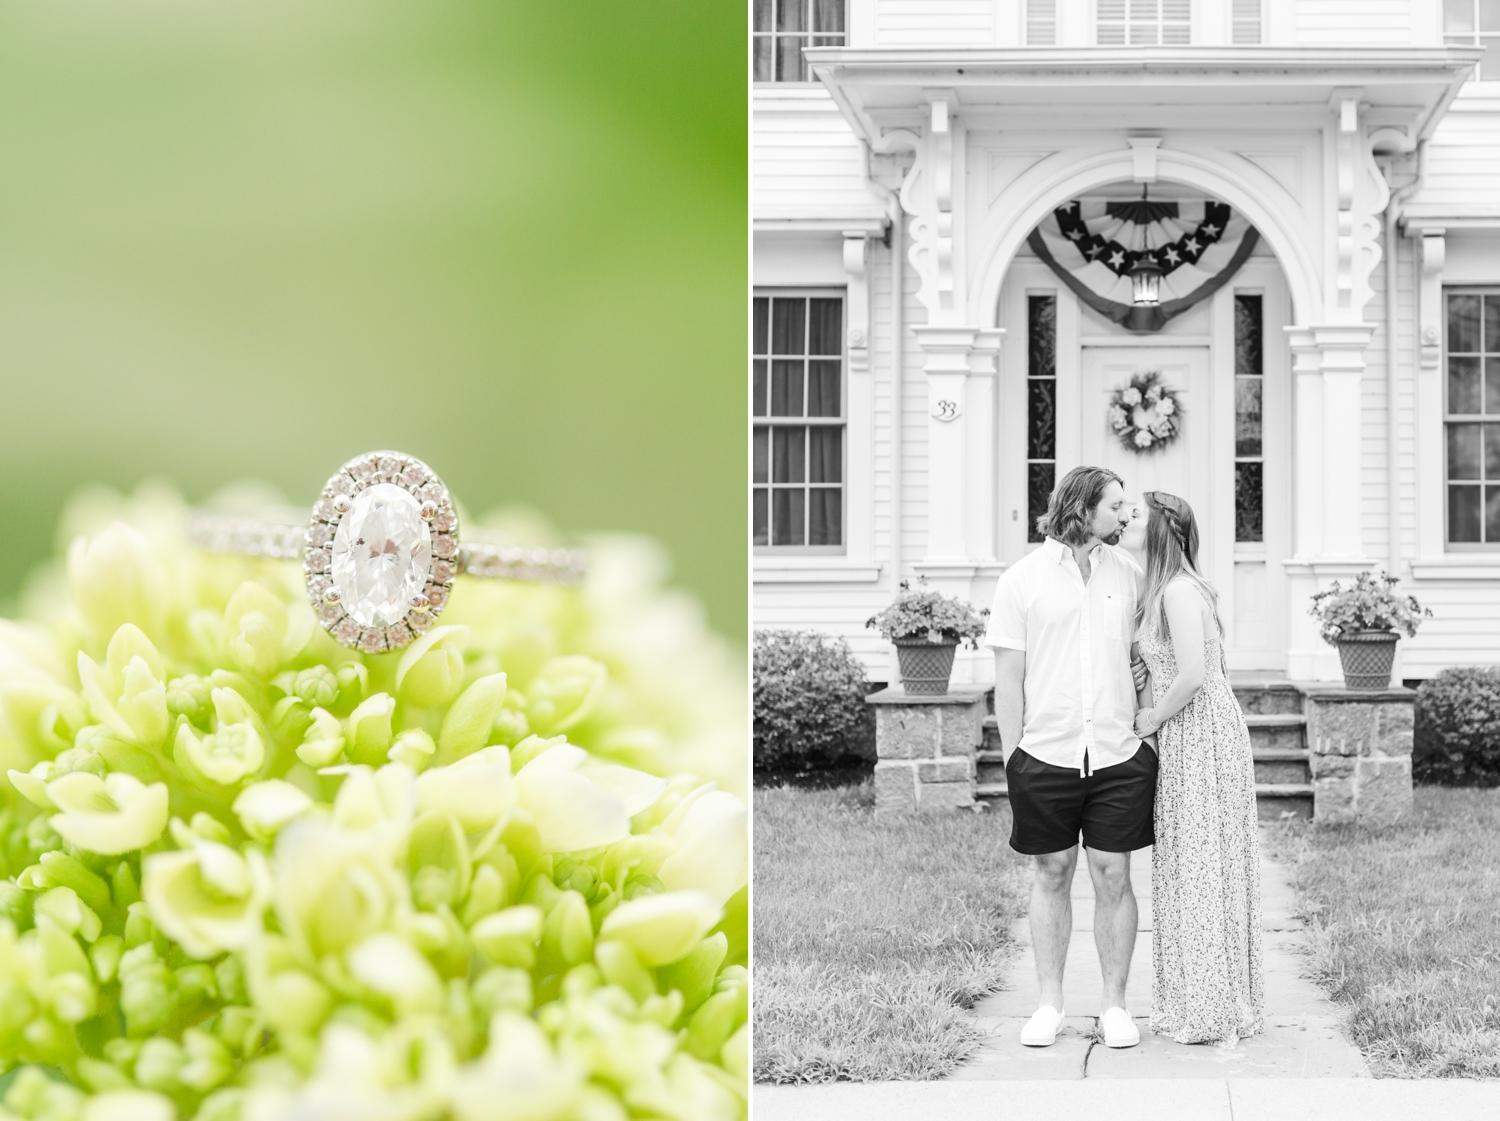 guilford-town-green-engagement-session-connecticut-wedding-photographer-shaina-lee-photography-photo